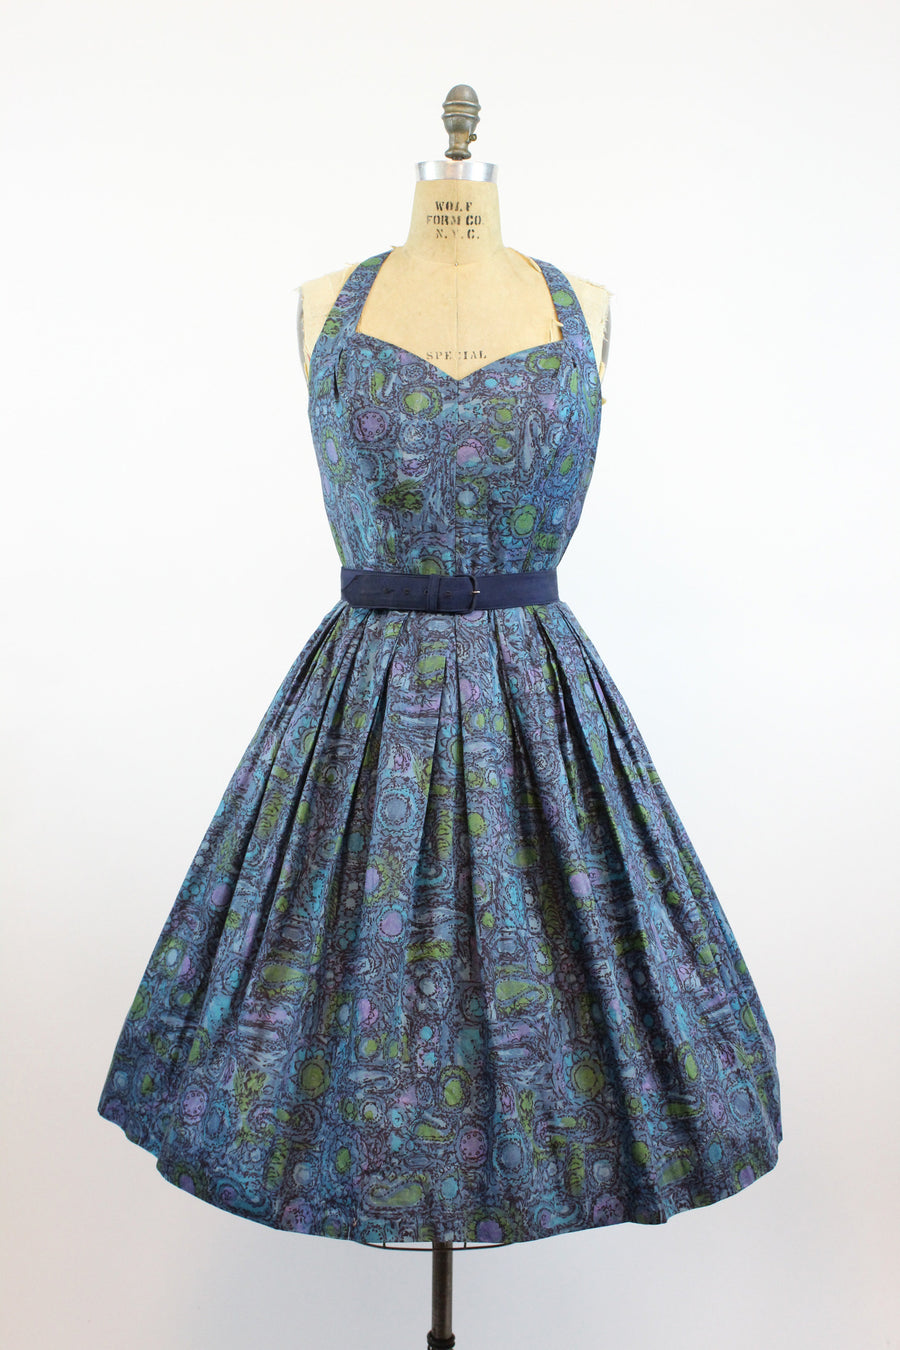 1950s Alix of Miami halter dress medium | vintage floral cage back cotton sun dress | new in